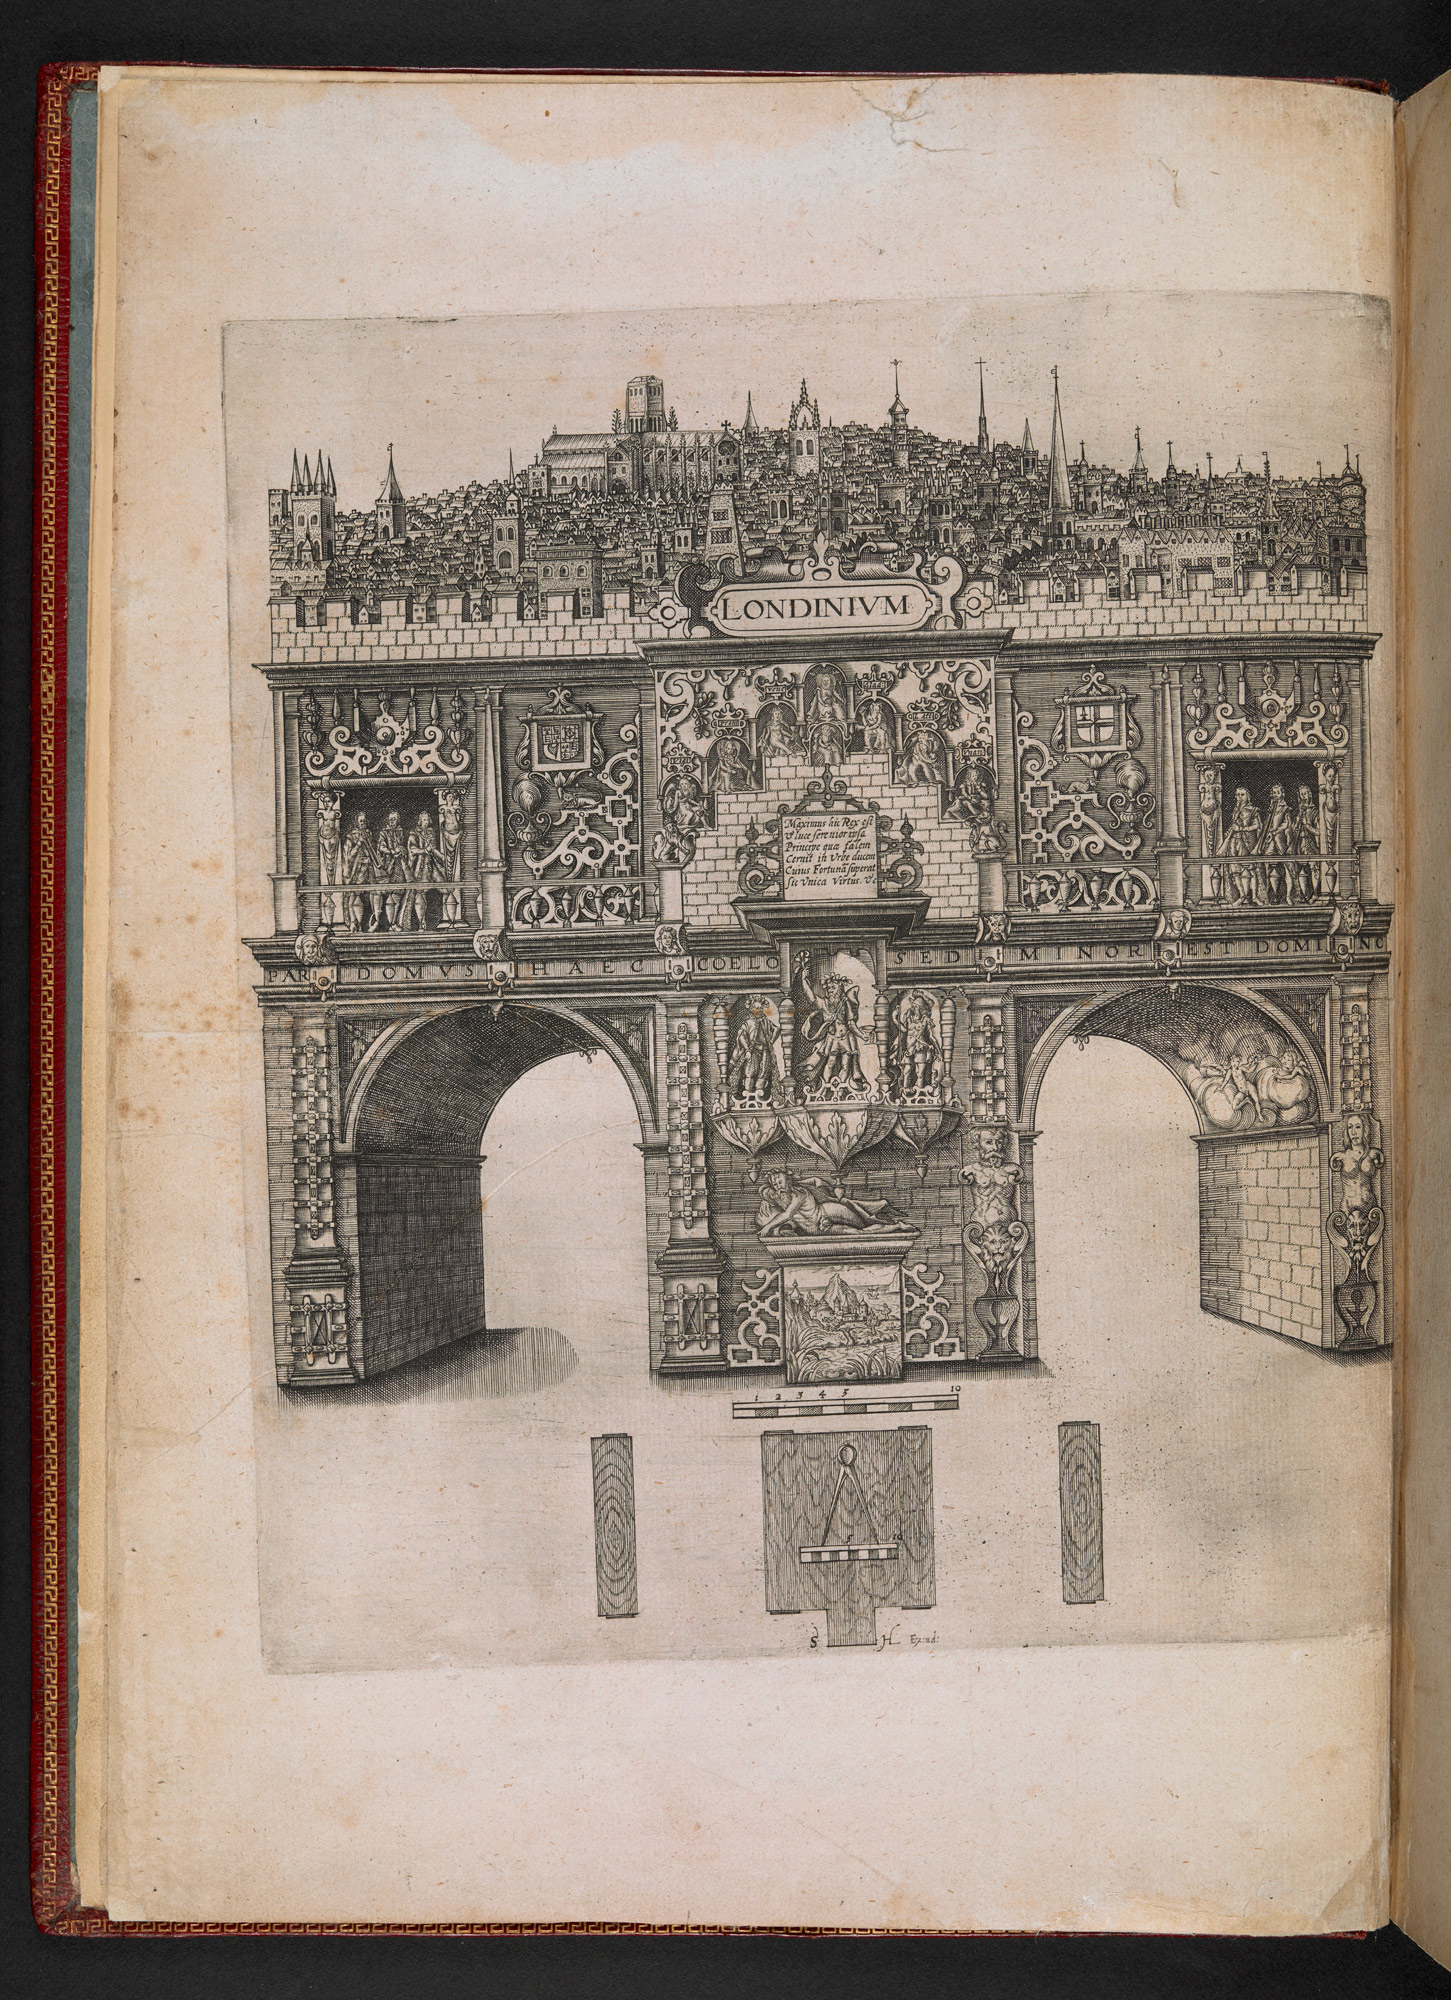 The Arches of Triumph, built for James I's entry into London